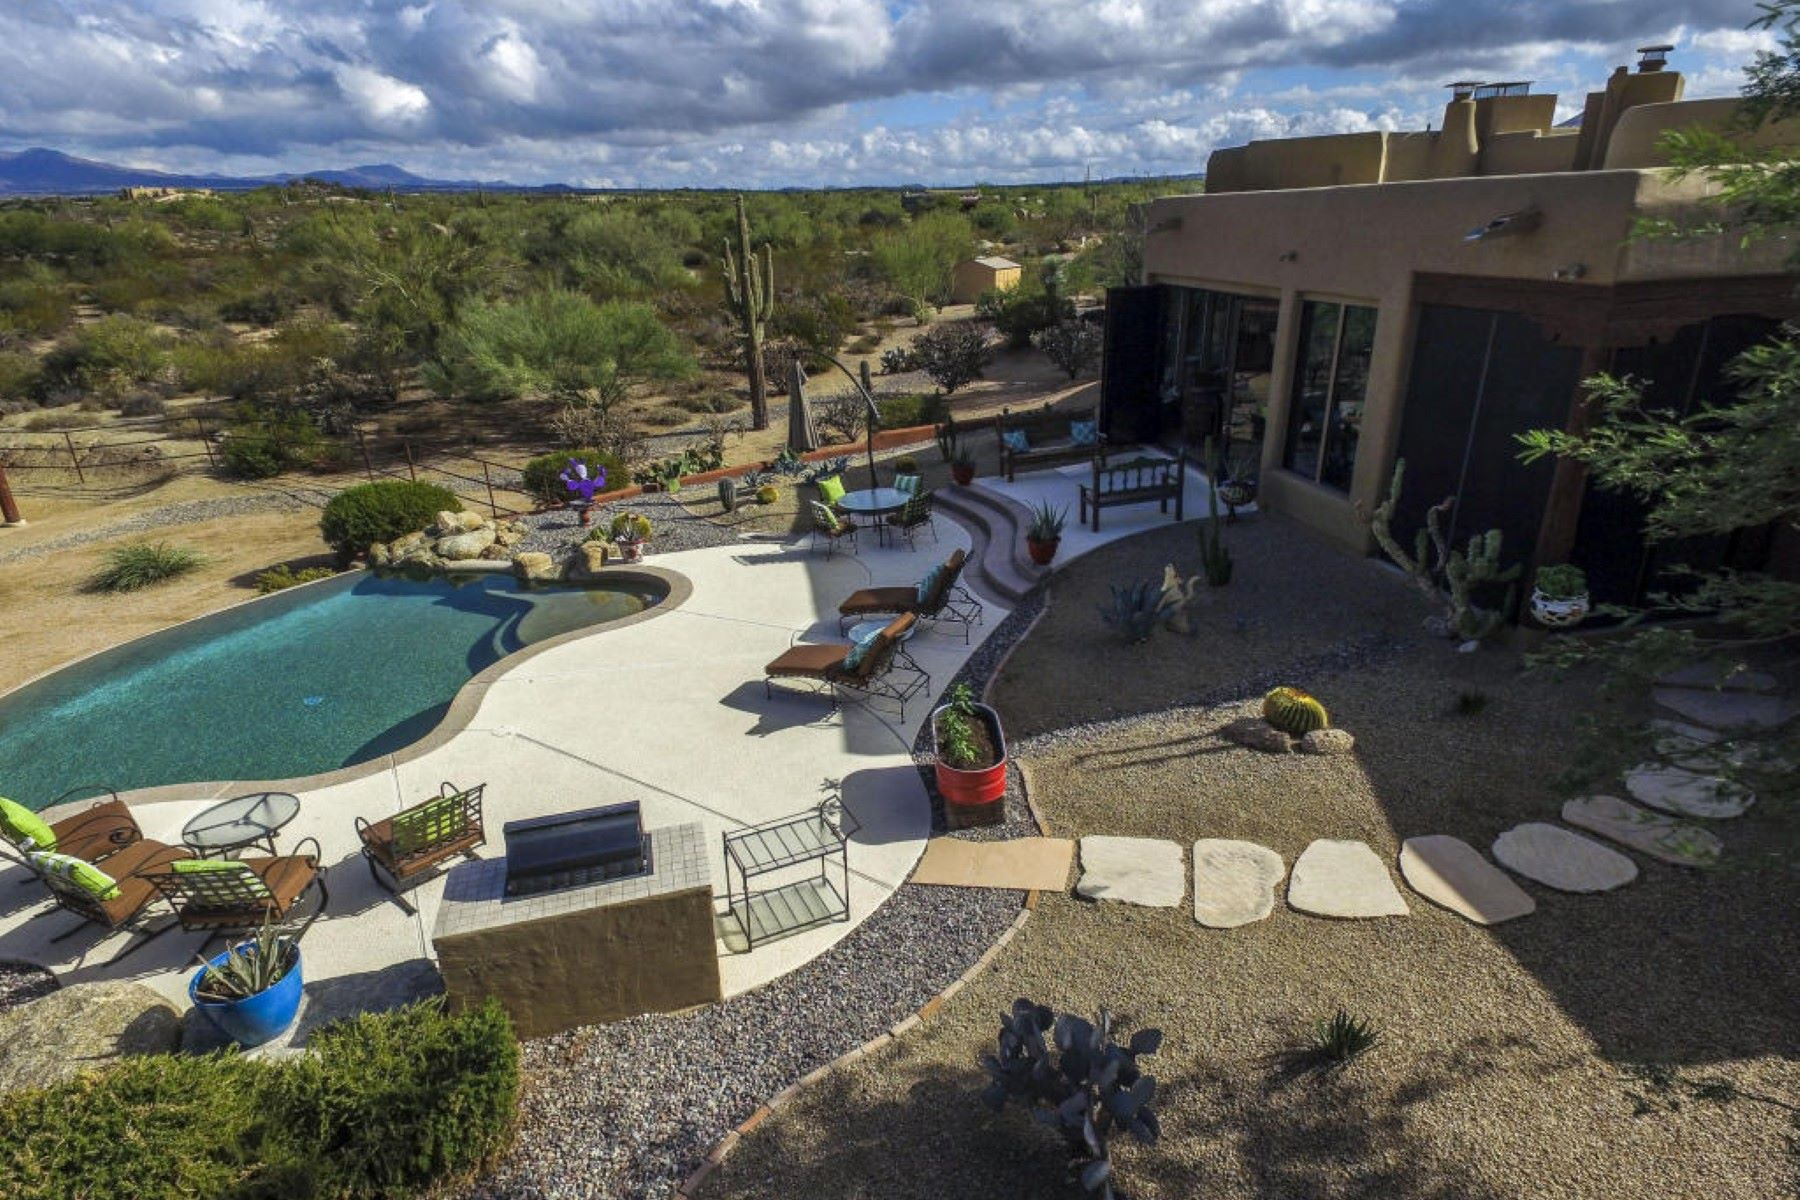 단독 가정 주택 용 매매 에 Ranch with elevated, panoramic views 31602 N Granite Reef Rd Scottsdale, 아리조나, 85266 미국